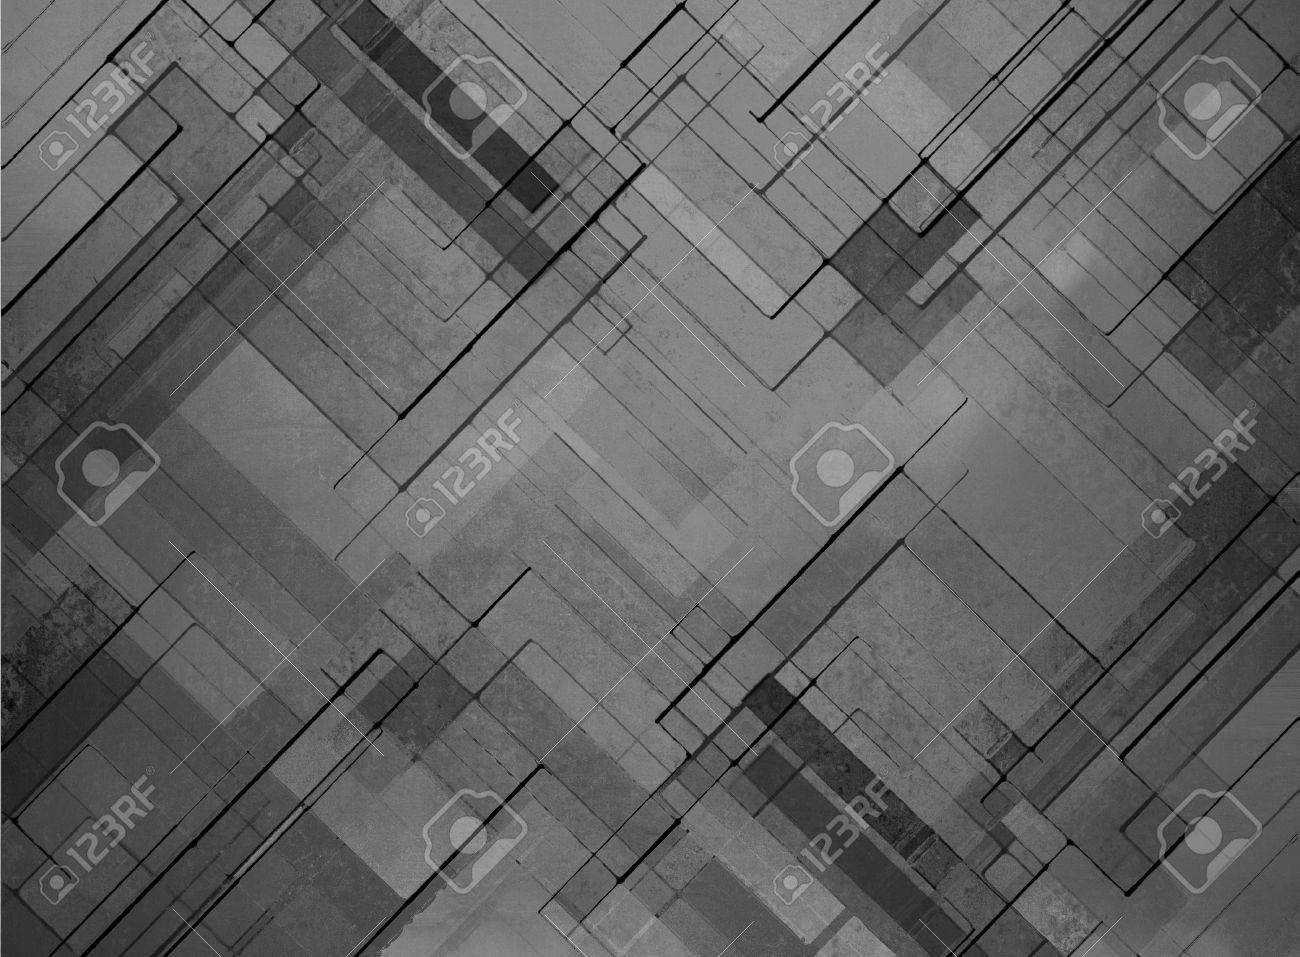 abstract black background faded gray geometric pattern of angles and lines, diagonal design elements, textured background - 43262784